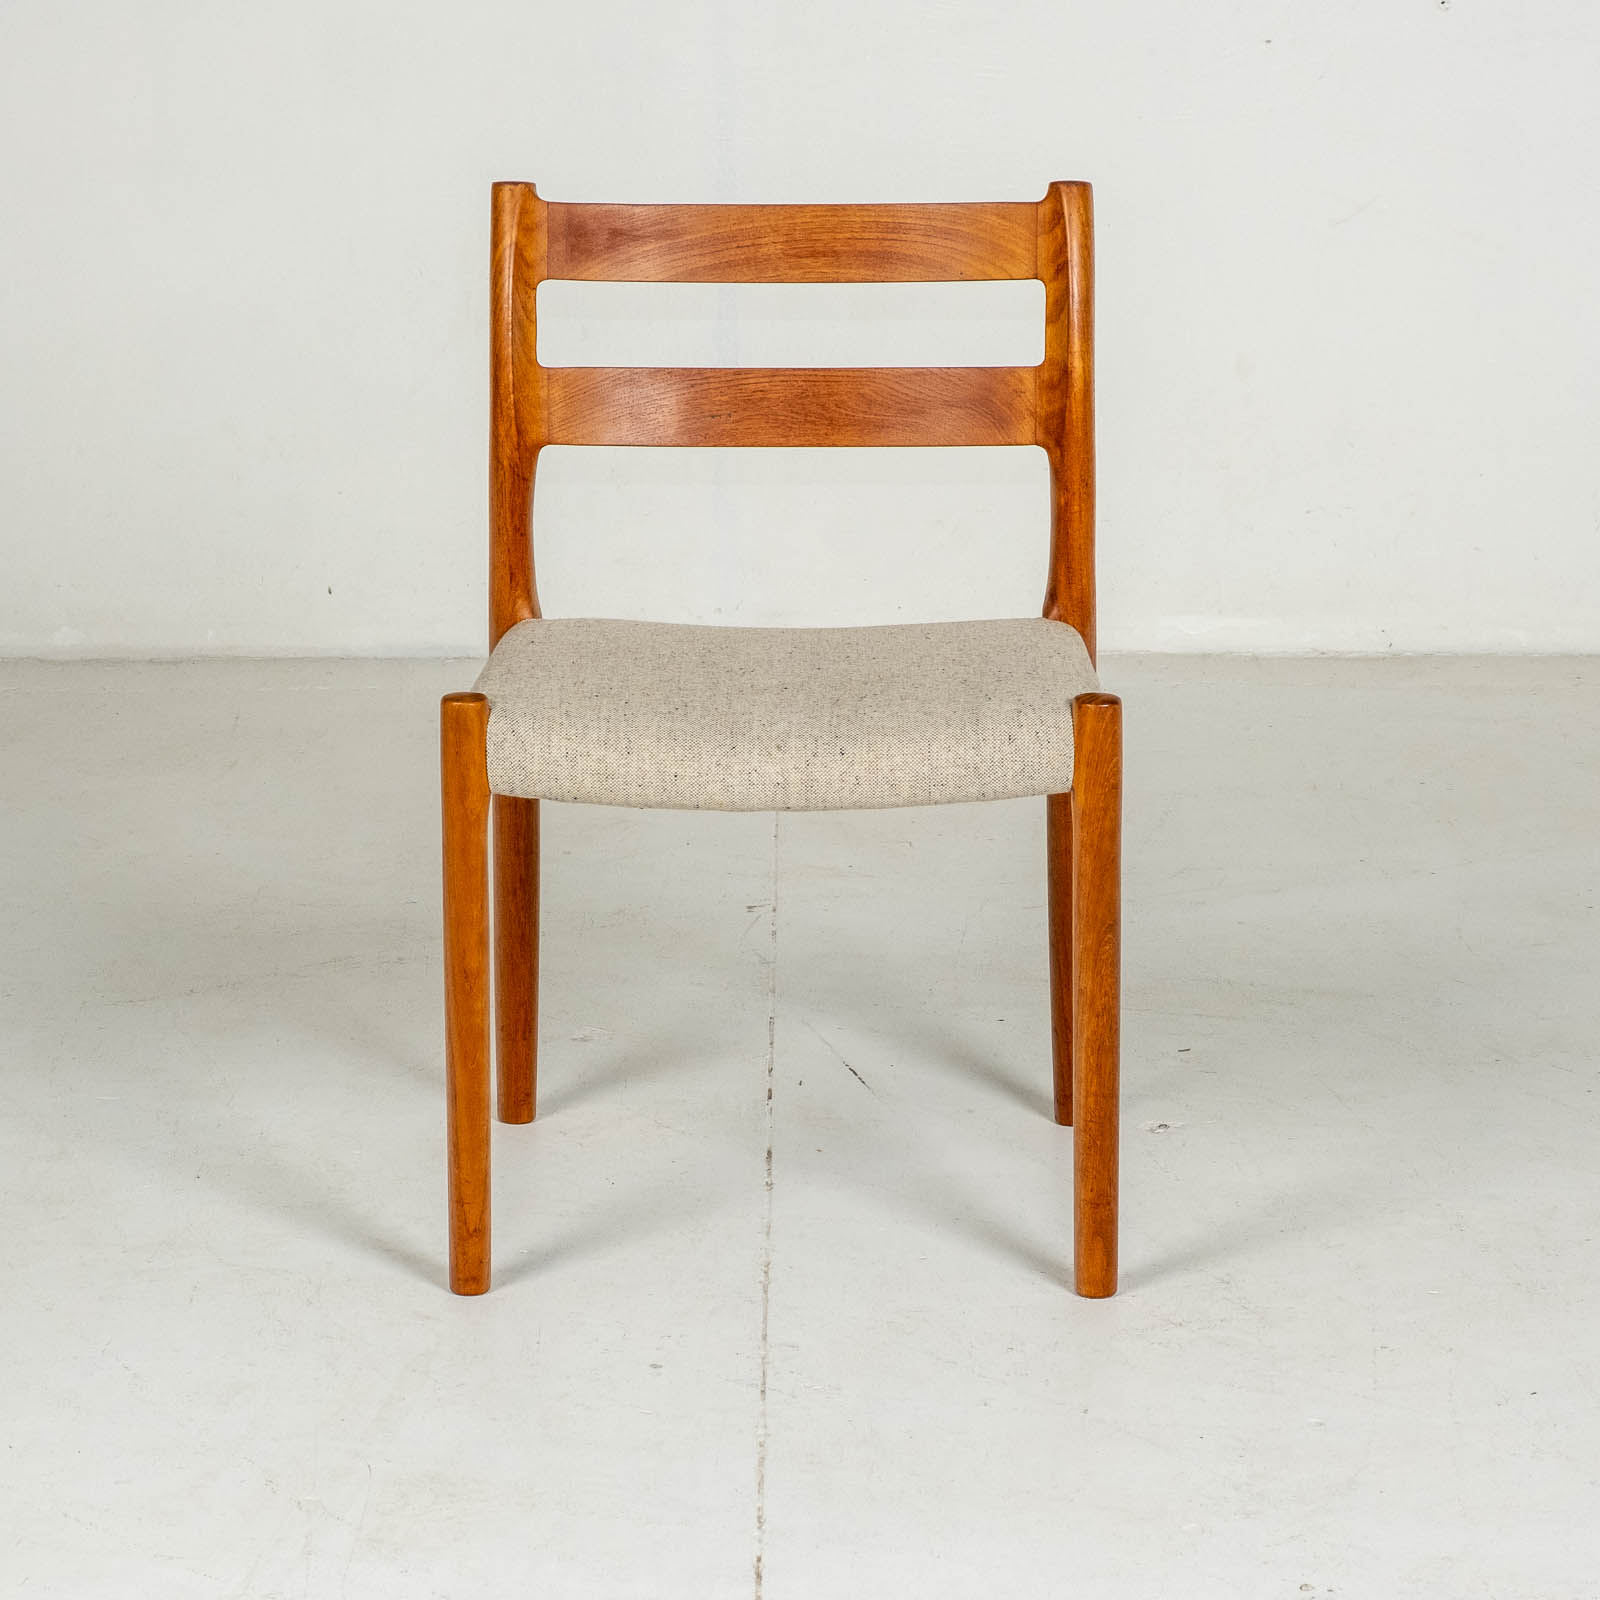 Set Of Four Ladder Back Dining Chairs By Niels Moller In Teak, 1960s, Denmark5